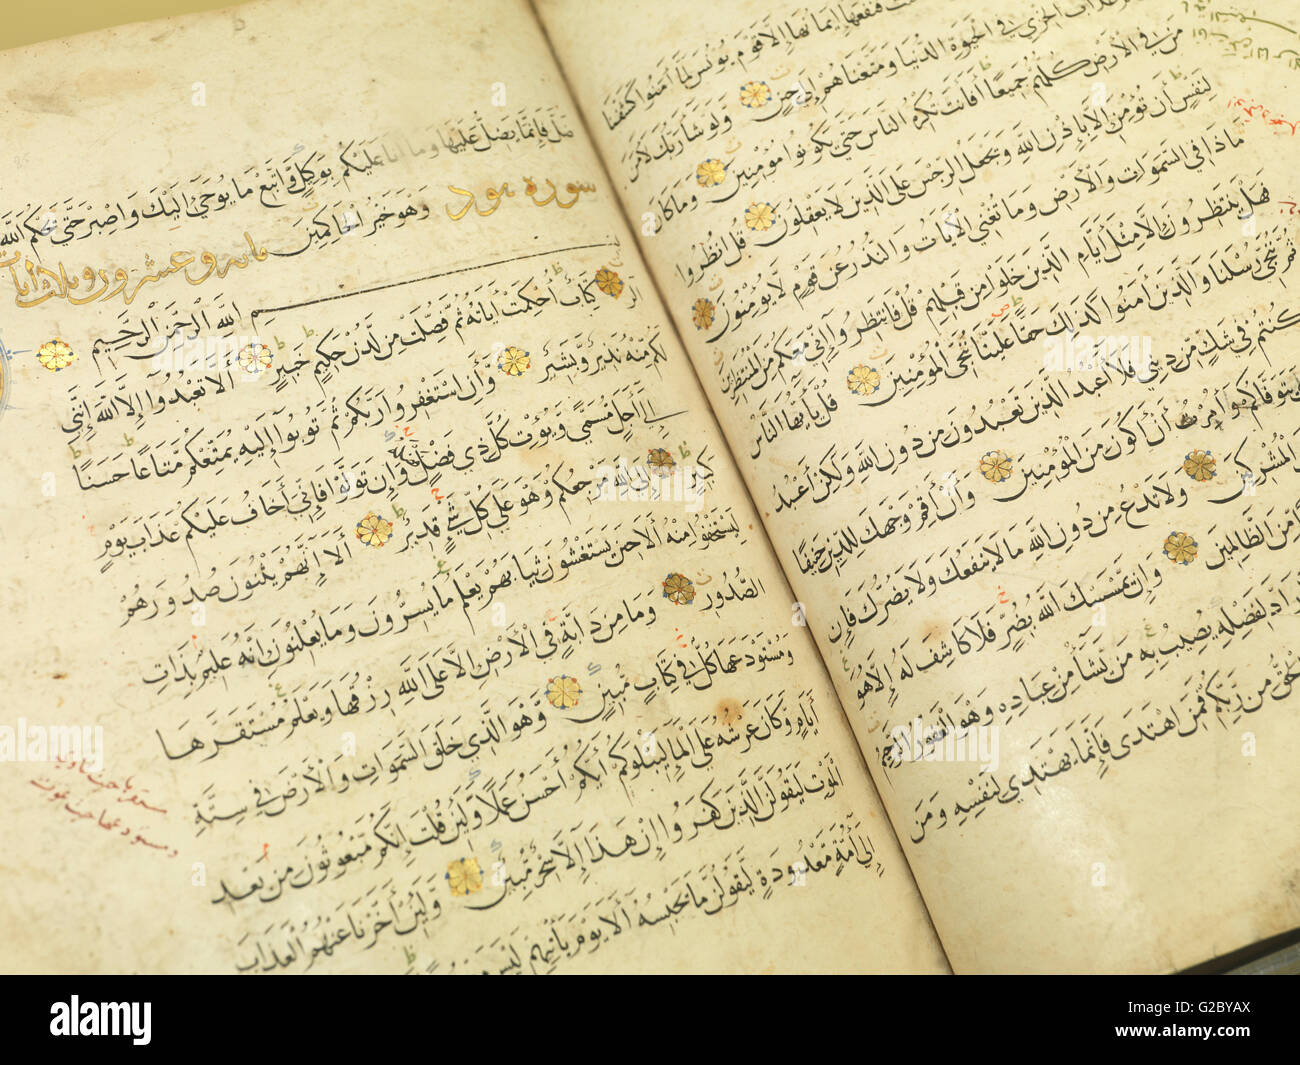 The Quran, written in 1464 - Stock Image